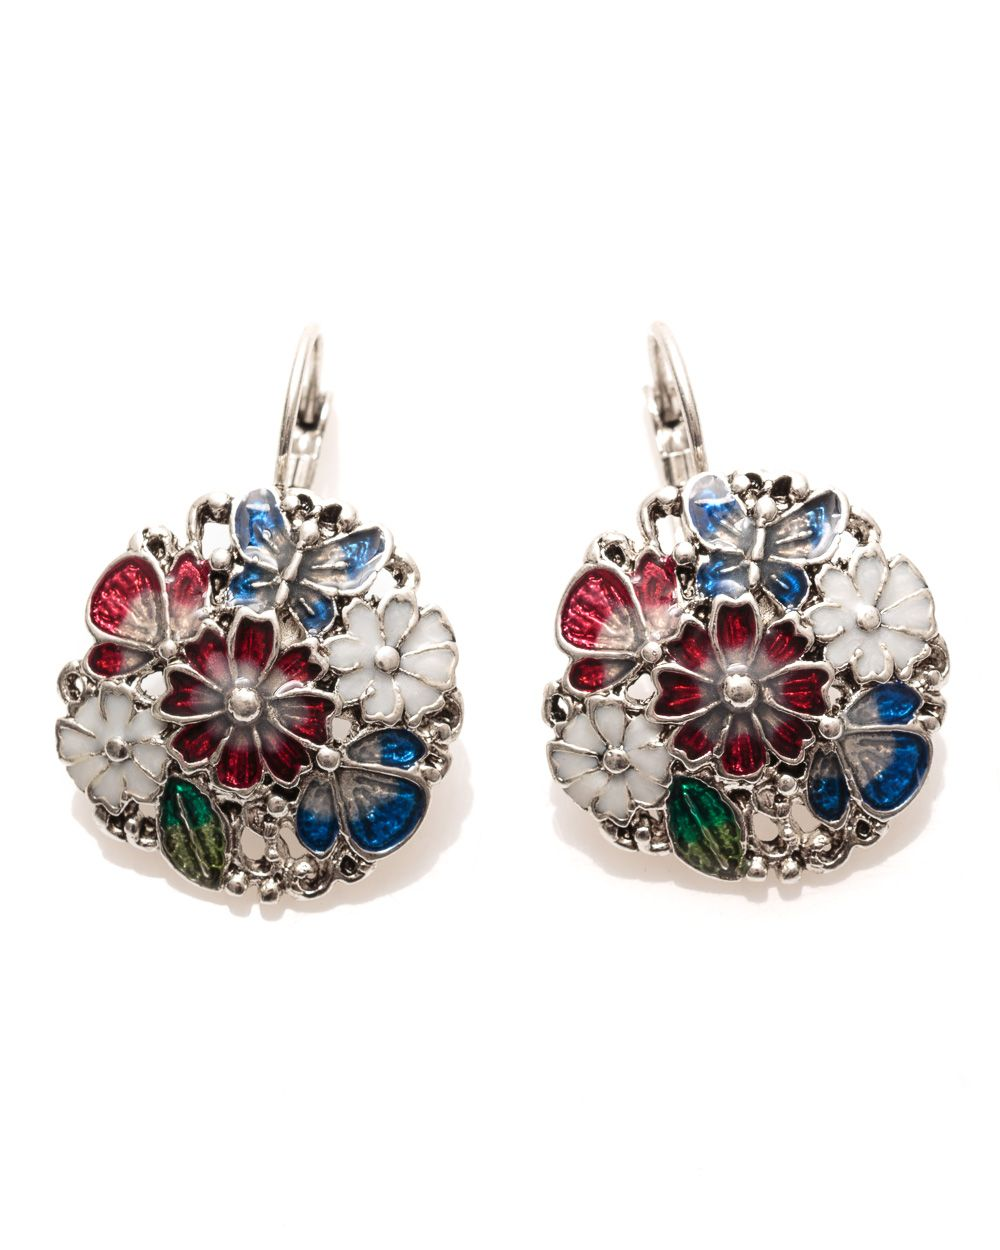 Enamel cluster earrings